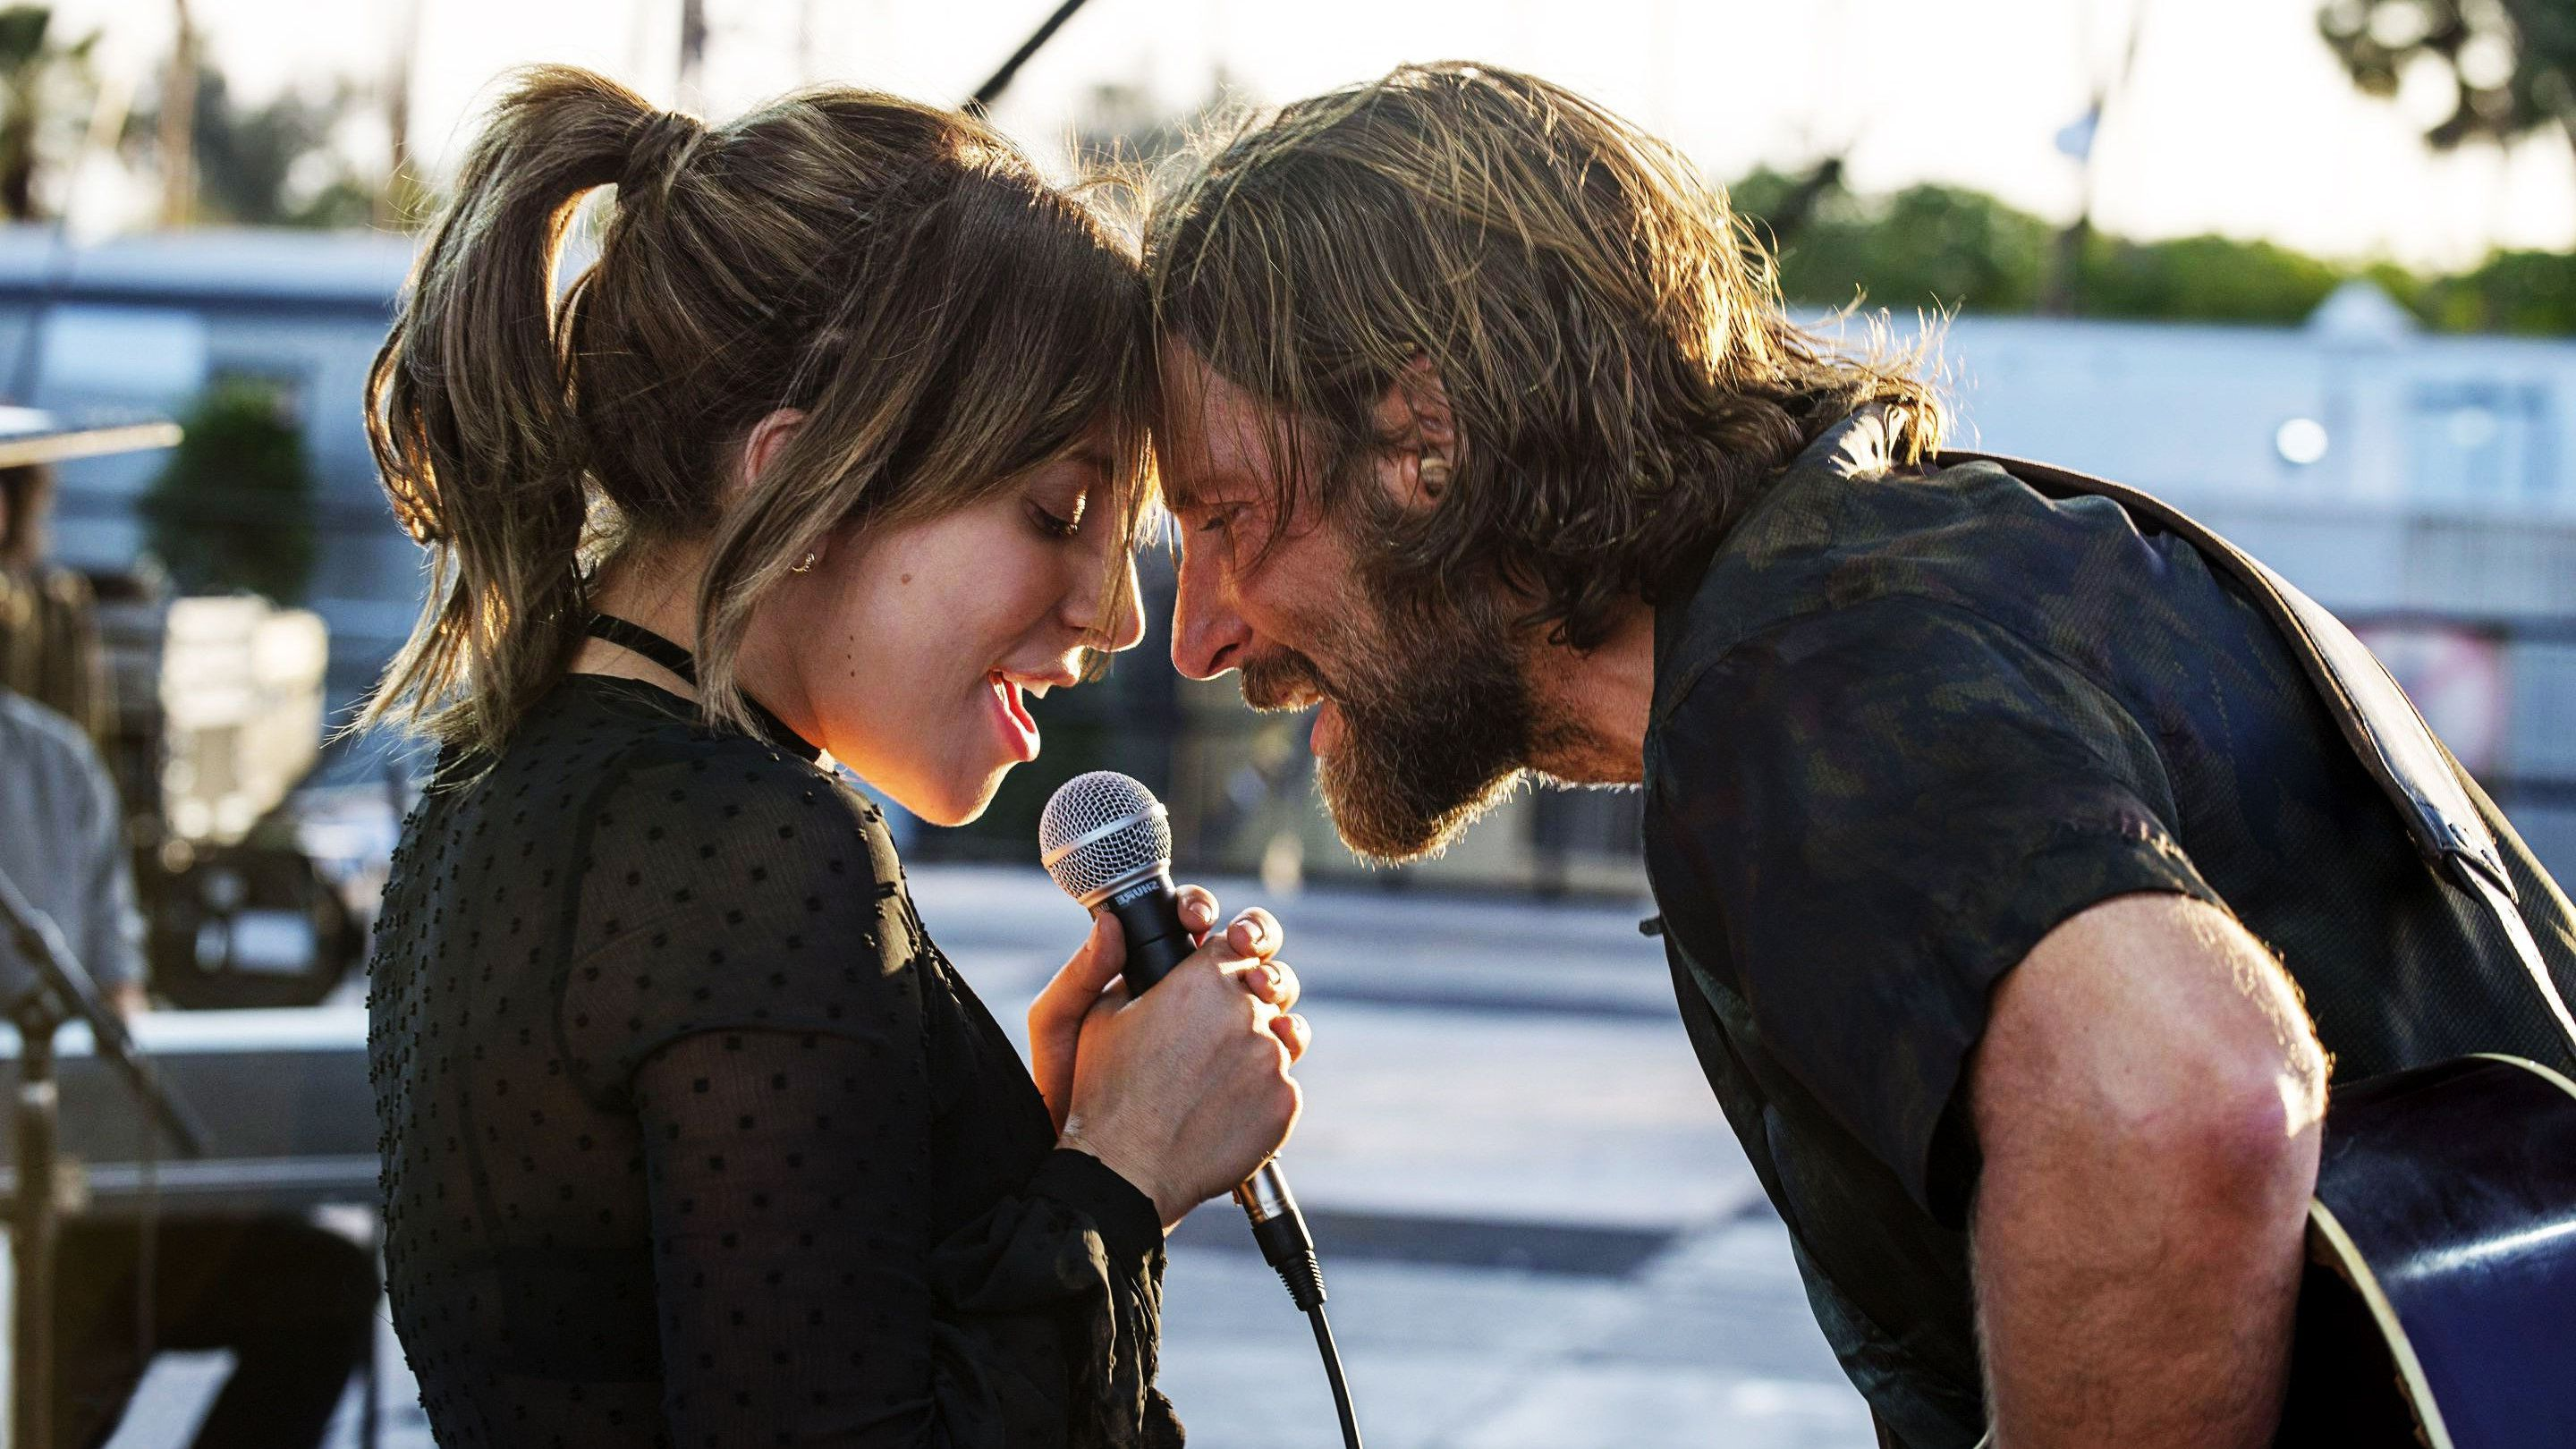 'A Star Is Born' Will Make Your Heart Swell Before Shattering It Into A Million Pieces - HuffPost